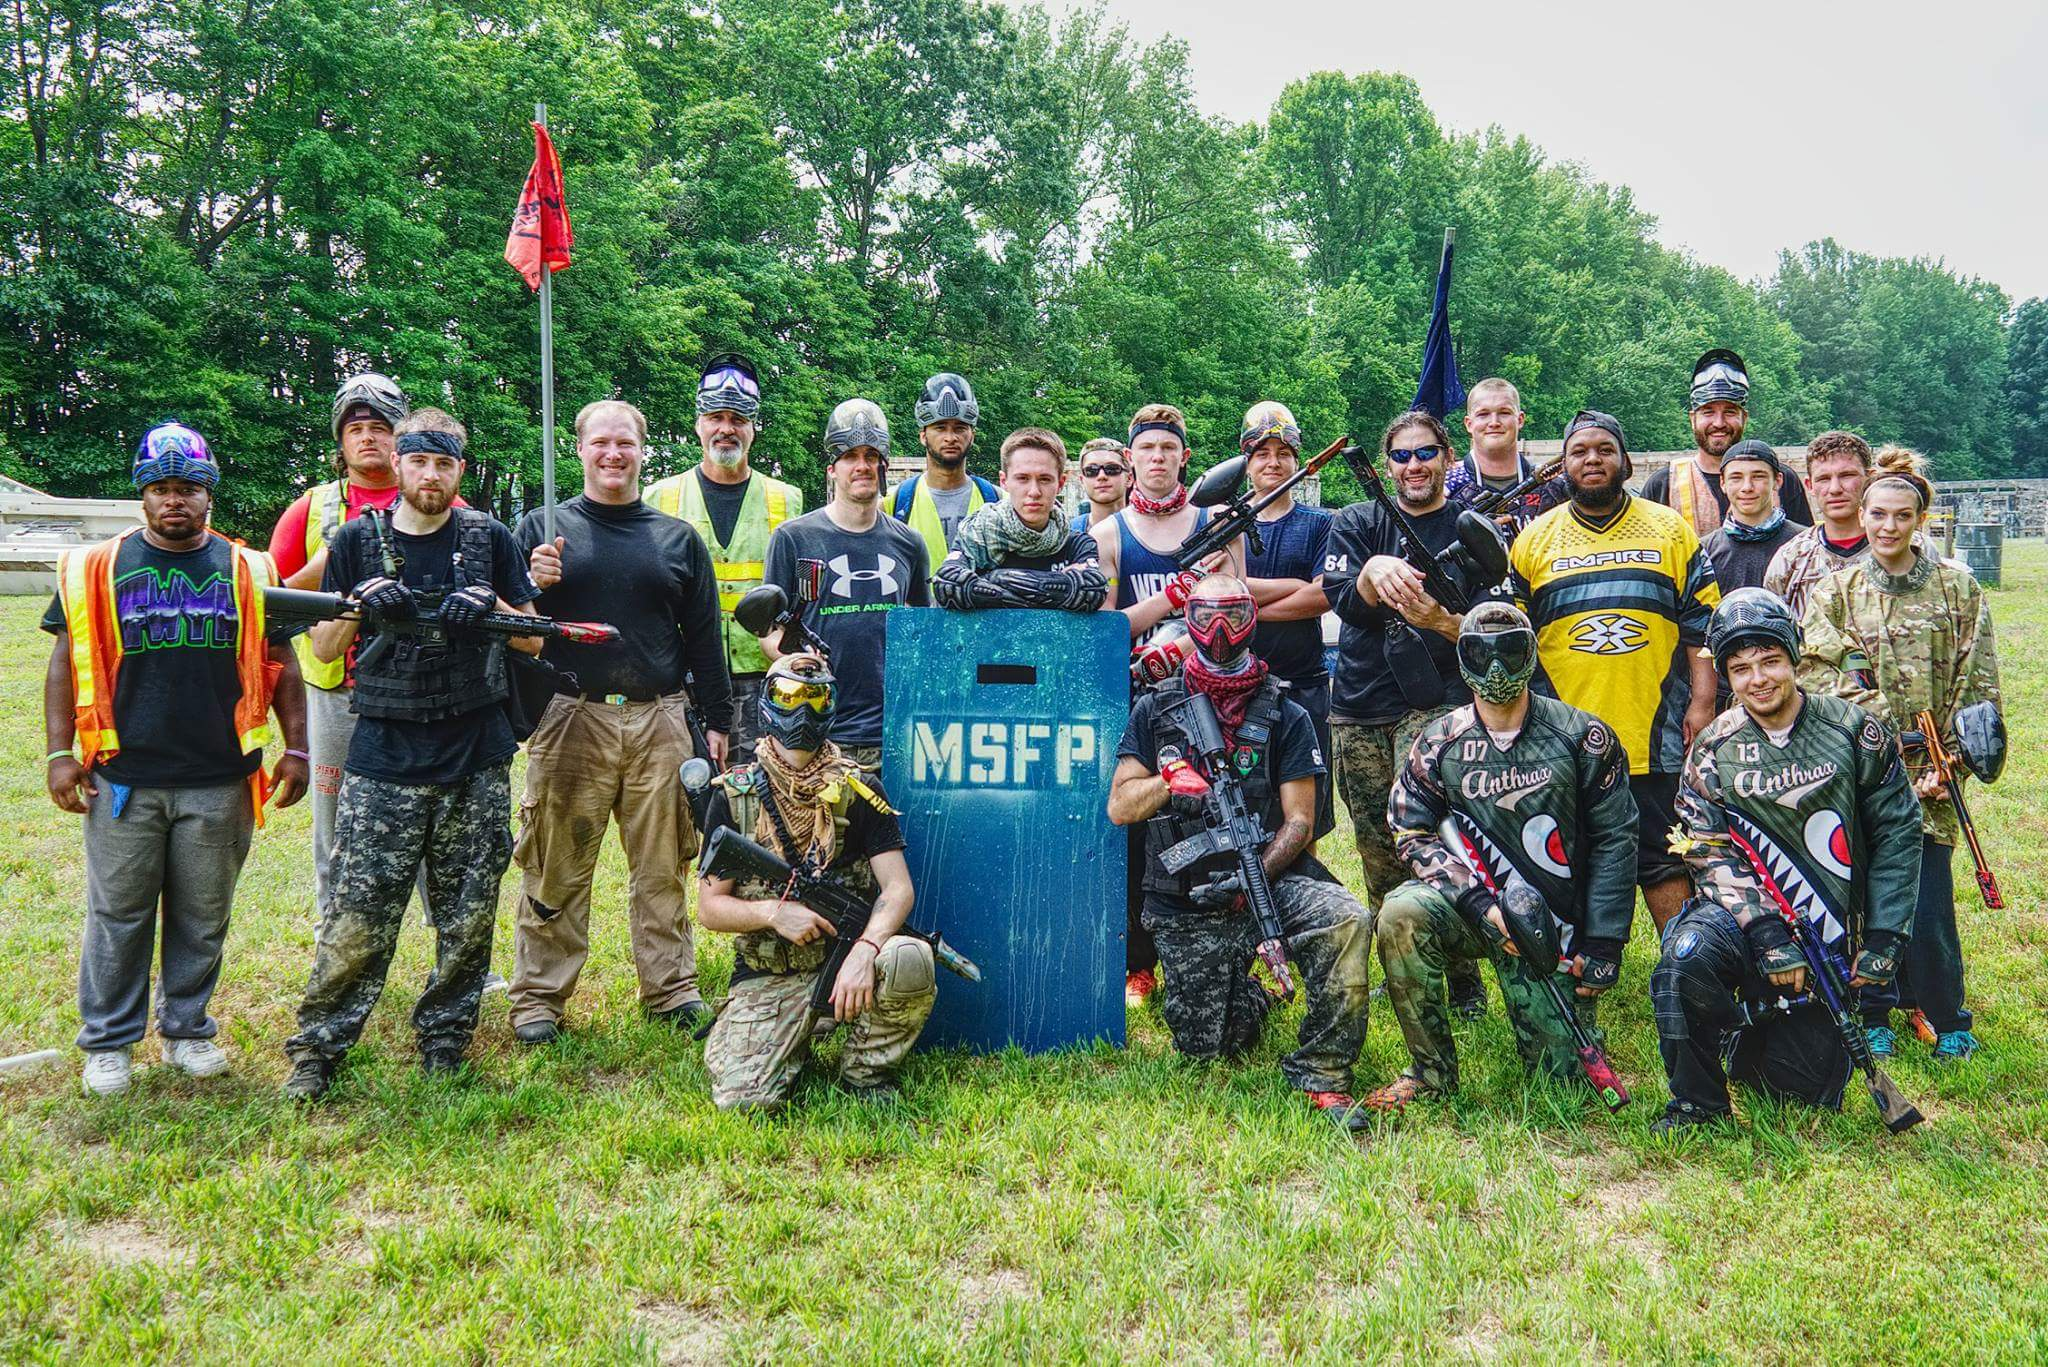 Group photo of players at Maple Shade Farm Paintball